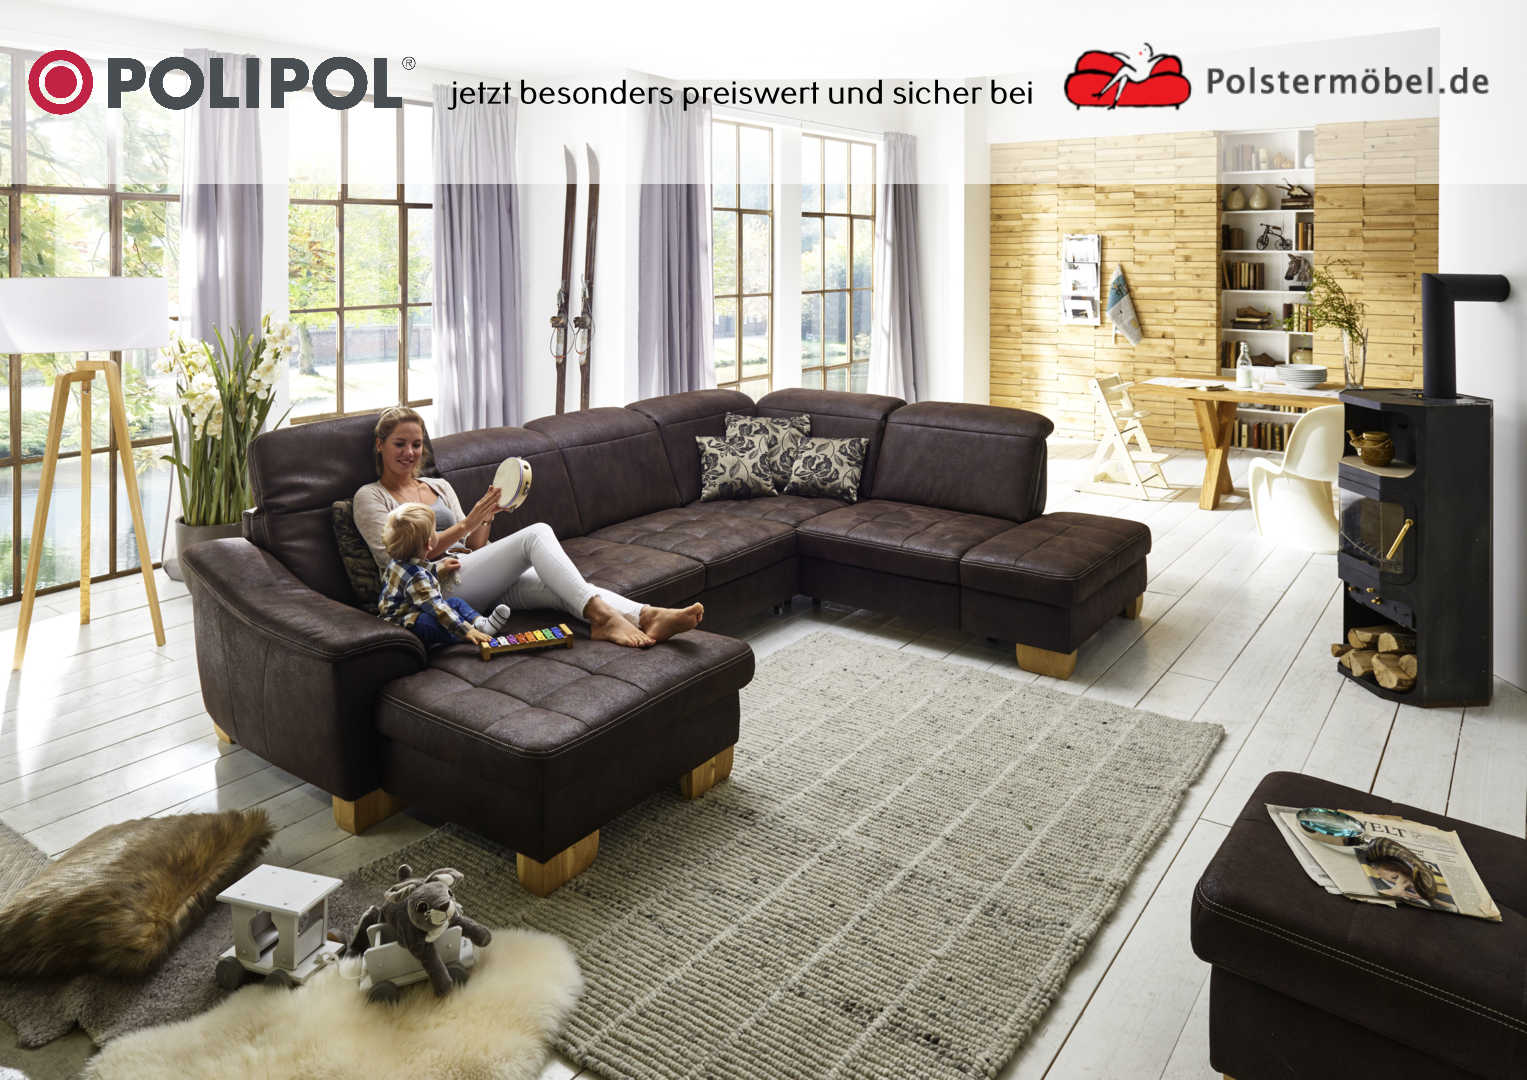 polipol infinity ls 670517 polsterm. Black Bedroom Furniture Sets. Home Design Ideas